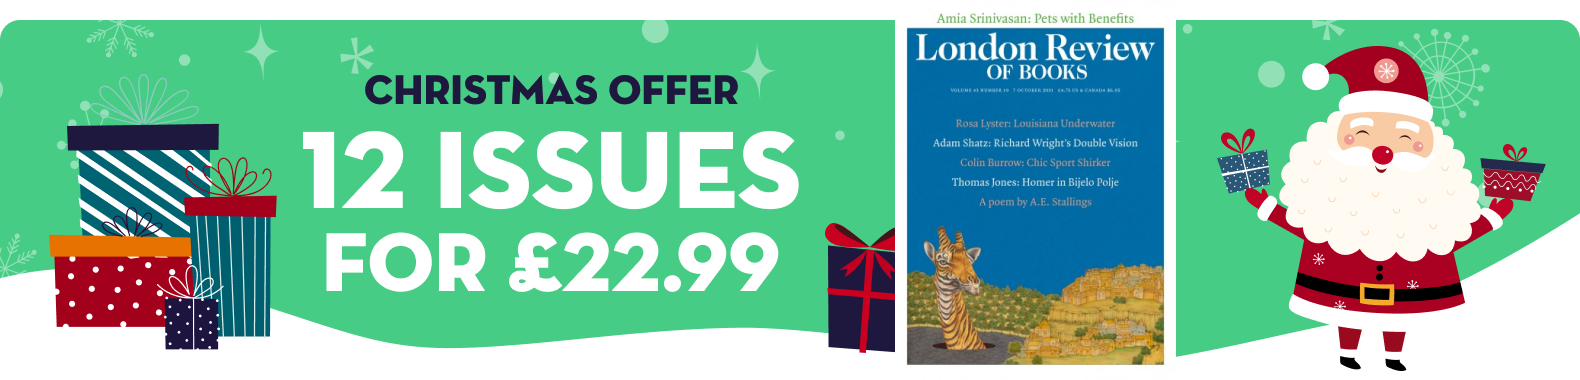 London Review of Books - XMAS2021